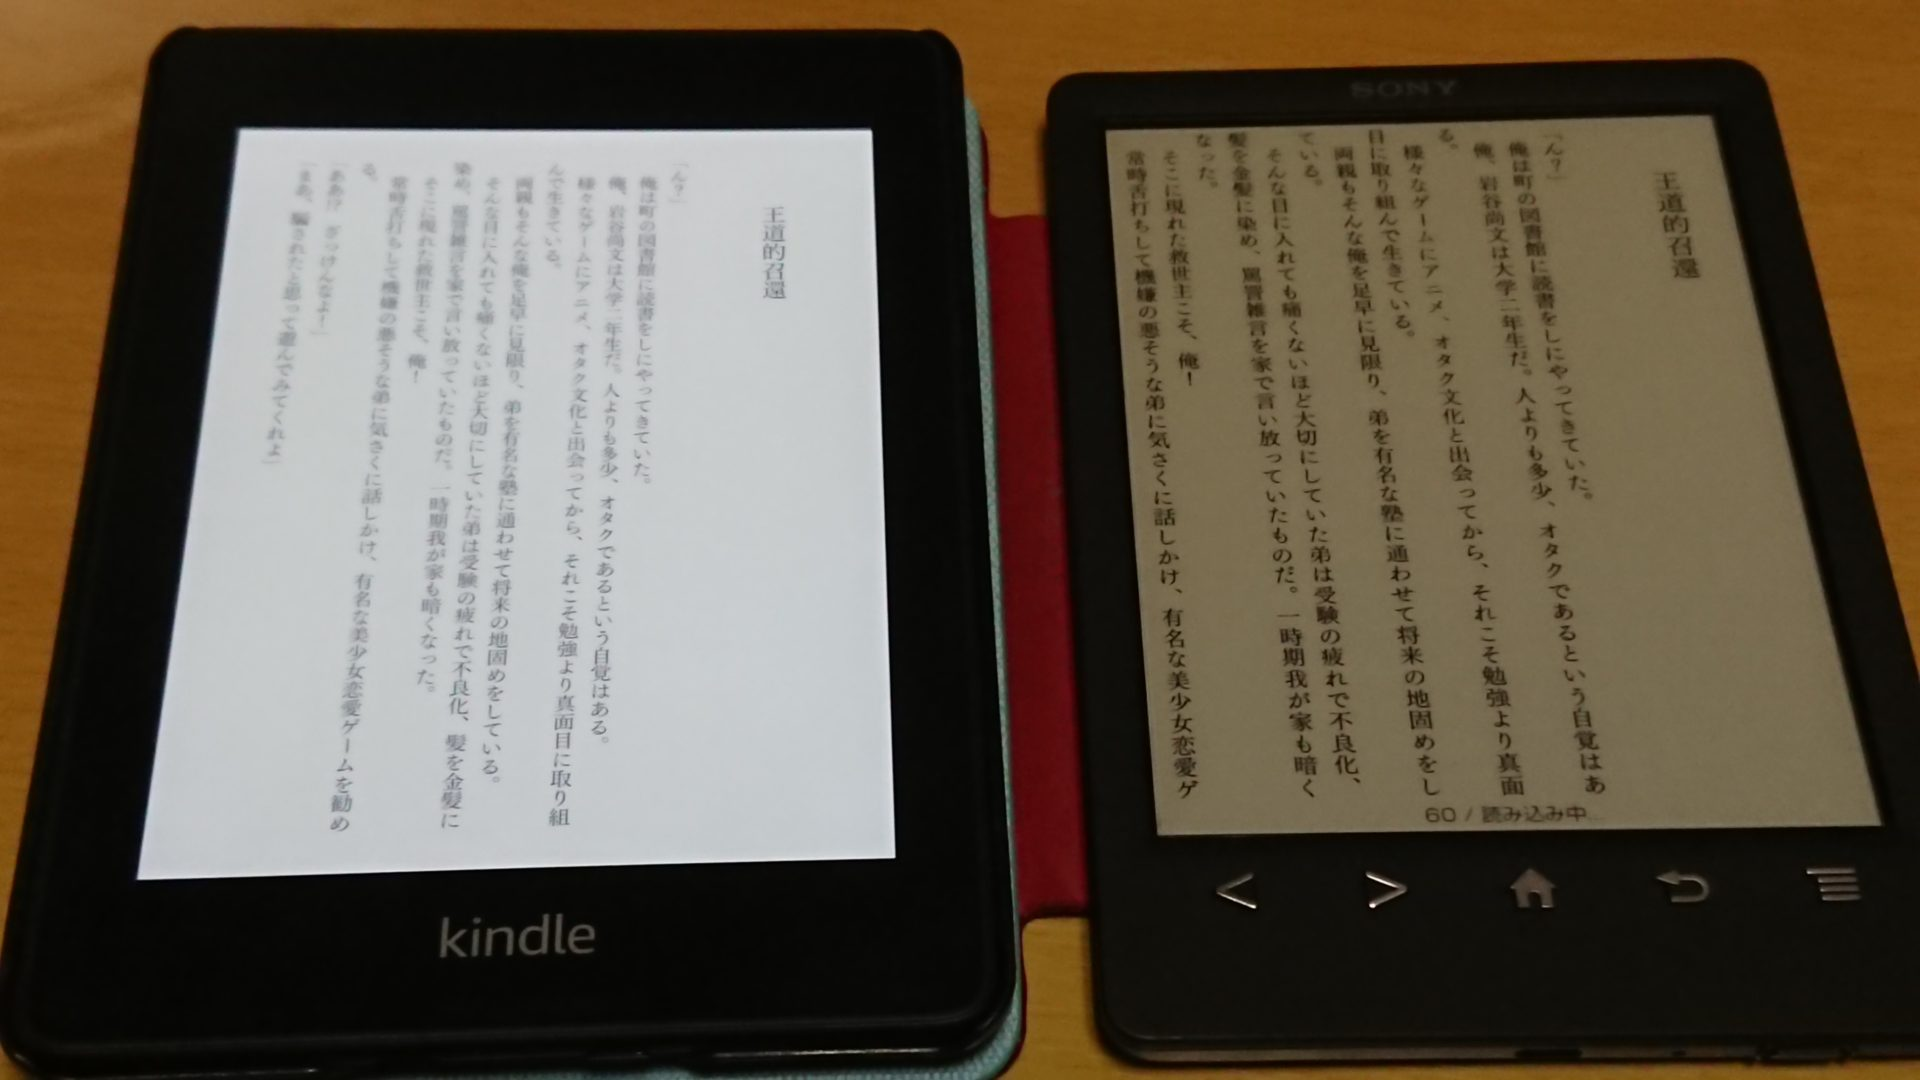 SonyReader KindlePaperwhite比較